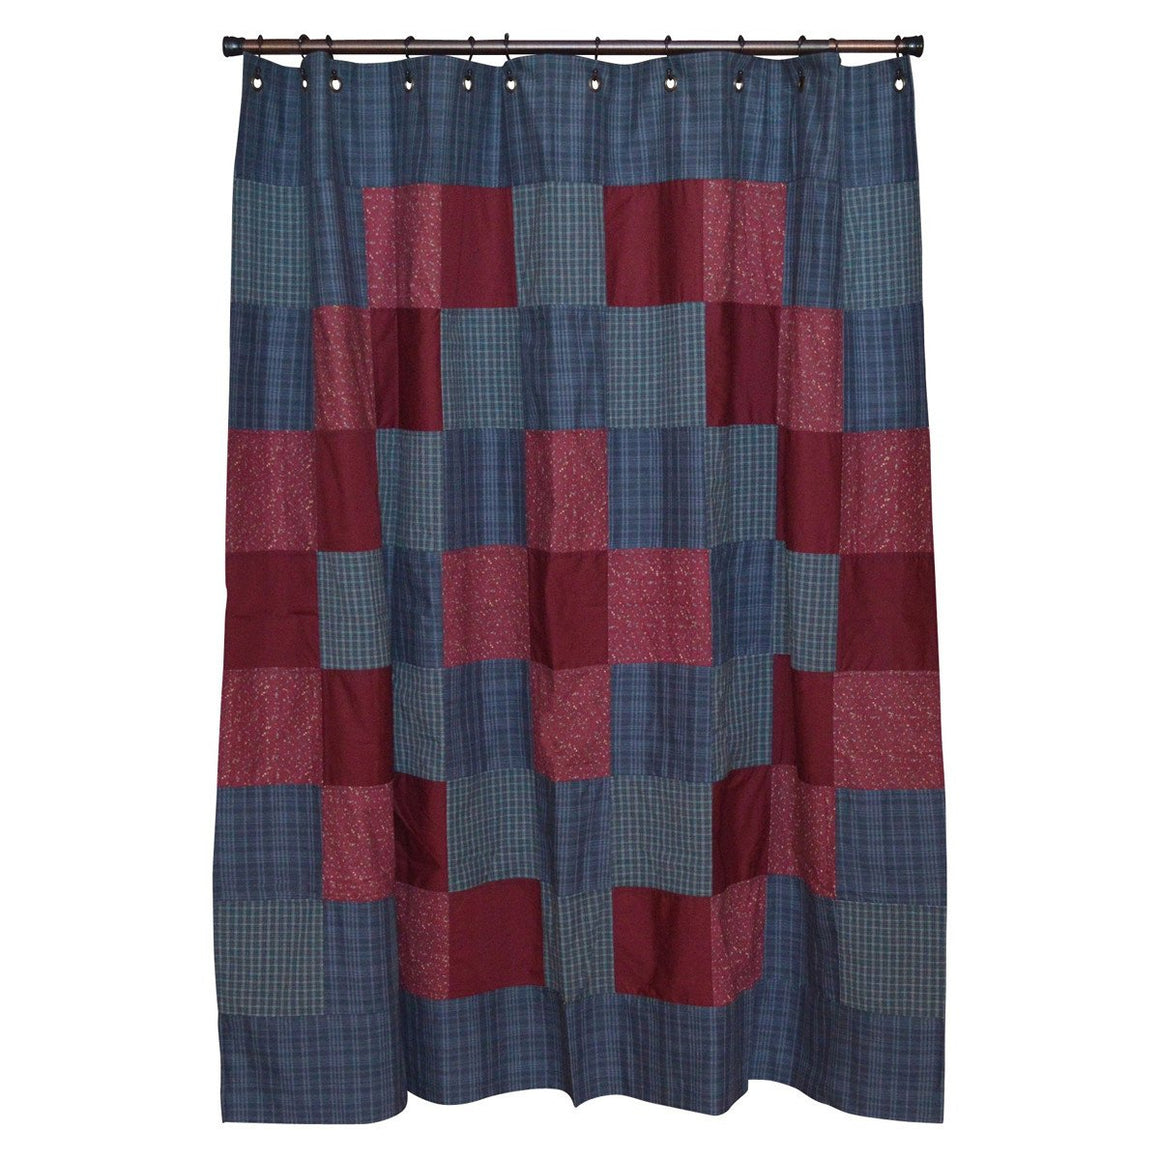 Huckleberry Hill Shower Curtain